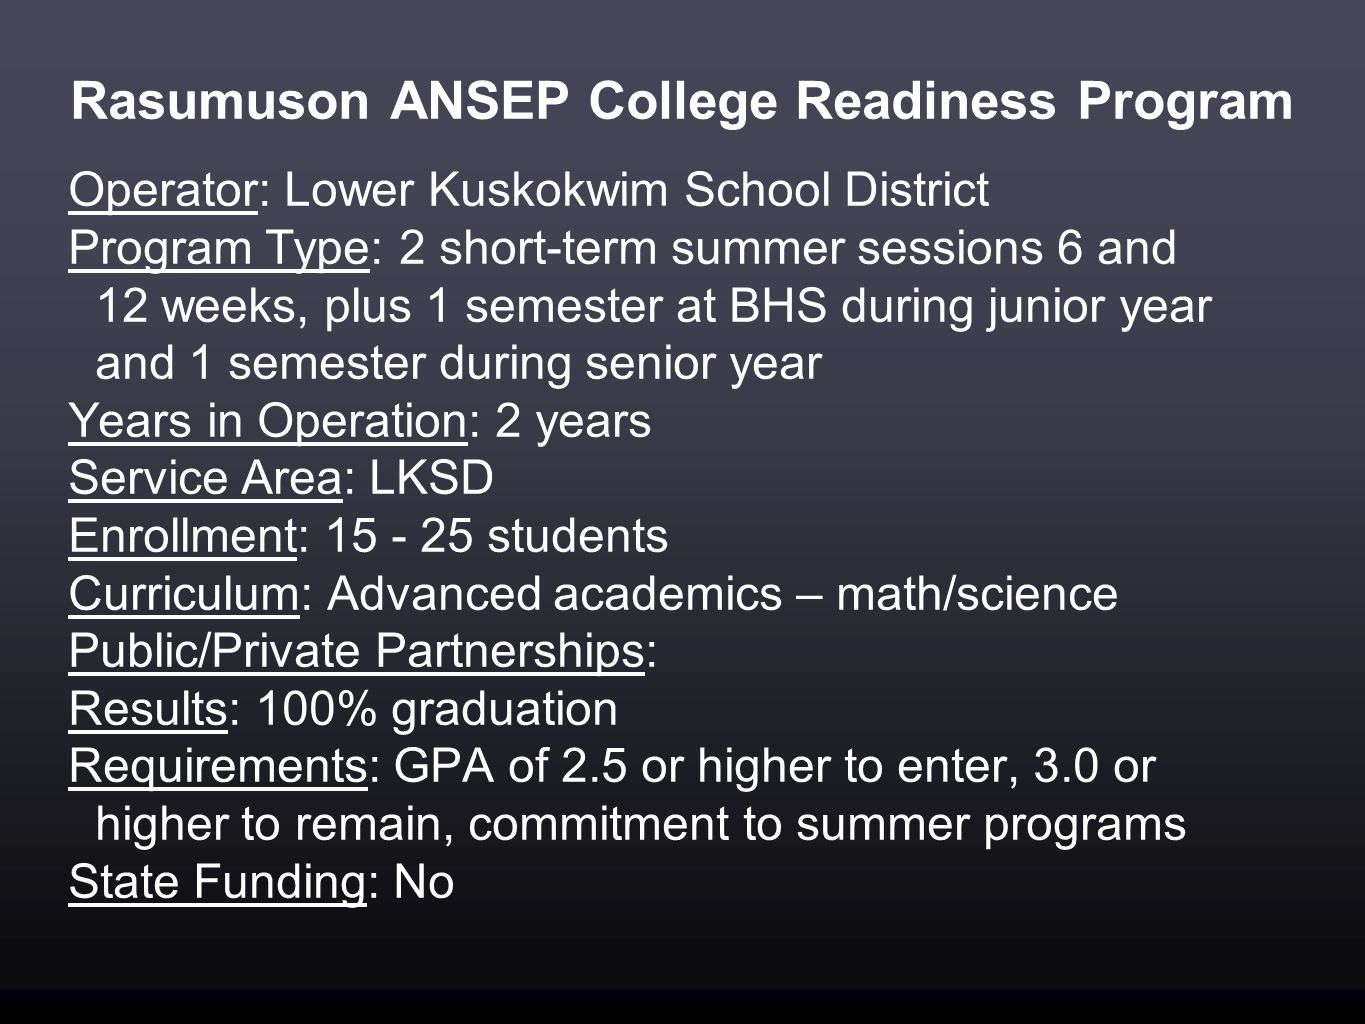 Rasumuson ANSEP College Readiness Program Operator: Lower Kuskokwim School District Program Type: 2 short-term summer sessions 6 and 12 weeks, plus 1